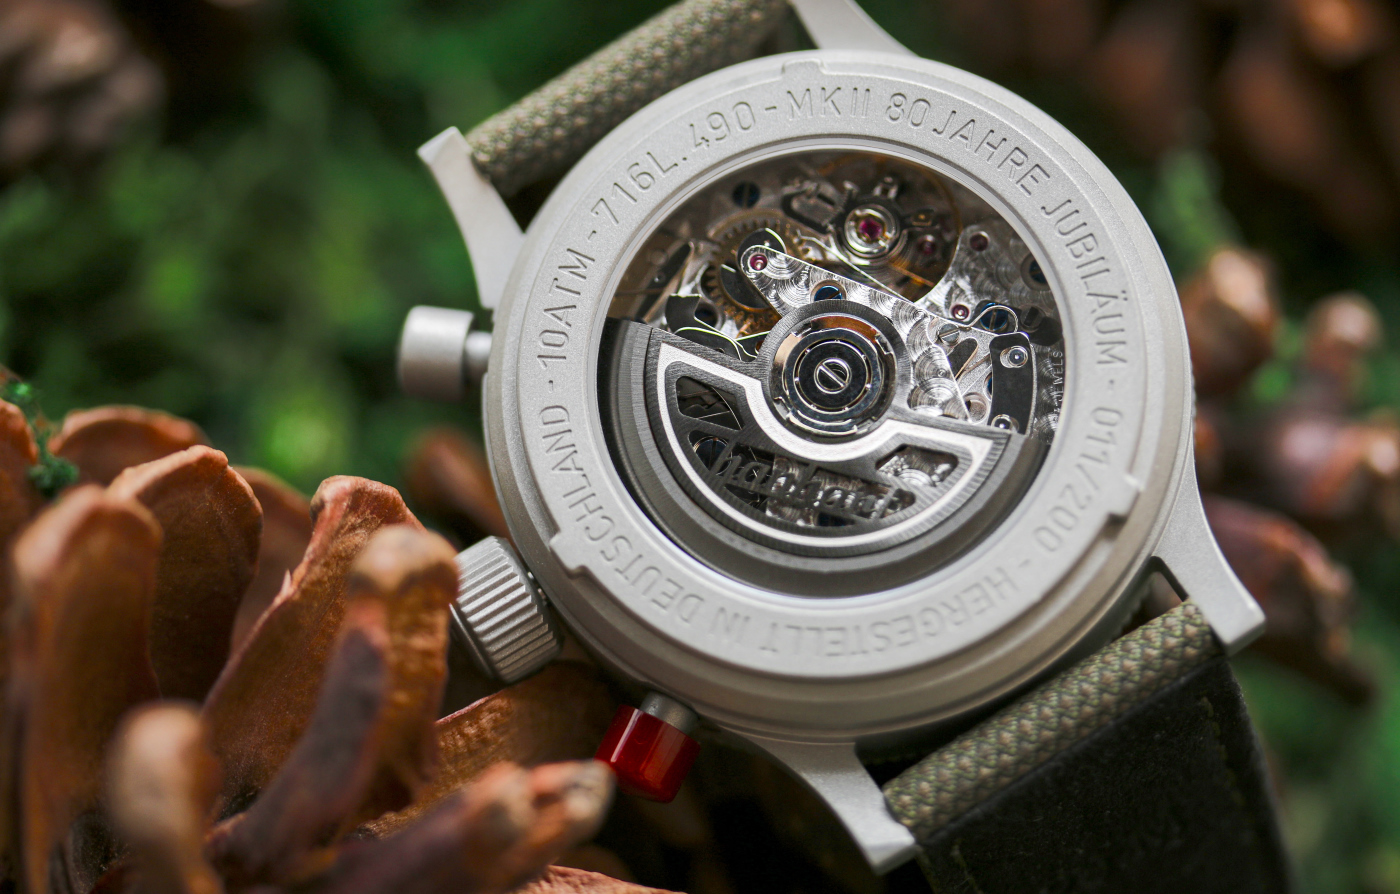 Hanhart-pioneer-mkii-80-years-limited-edition-back_-_Europa_Star_watch_magazine_2020